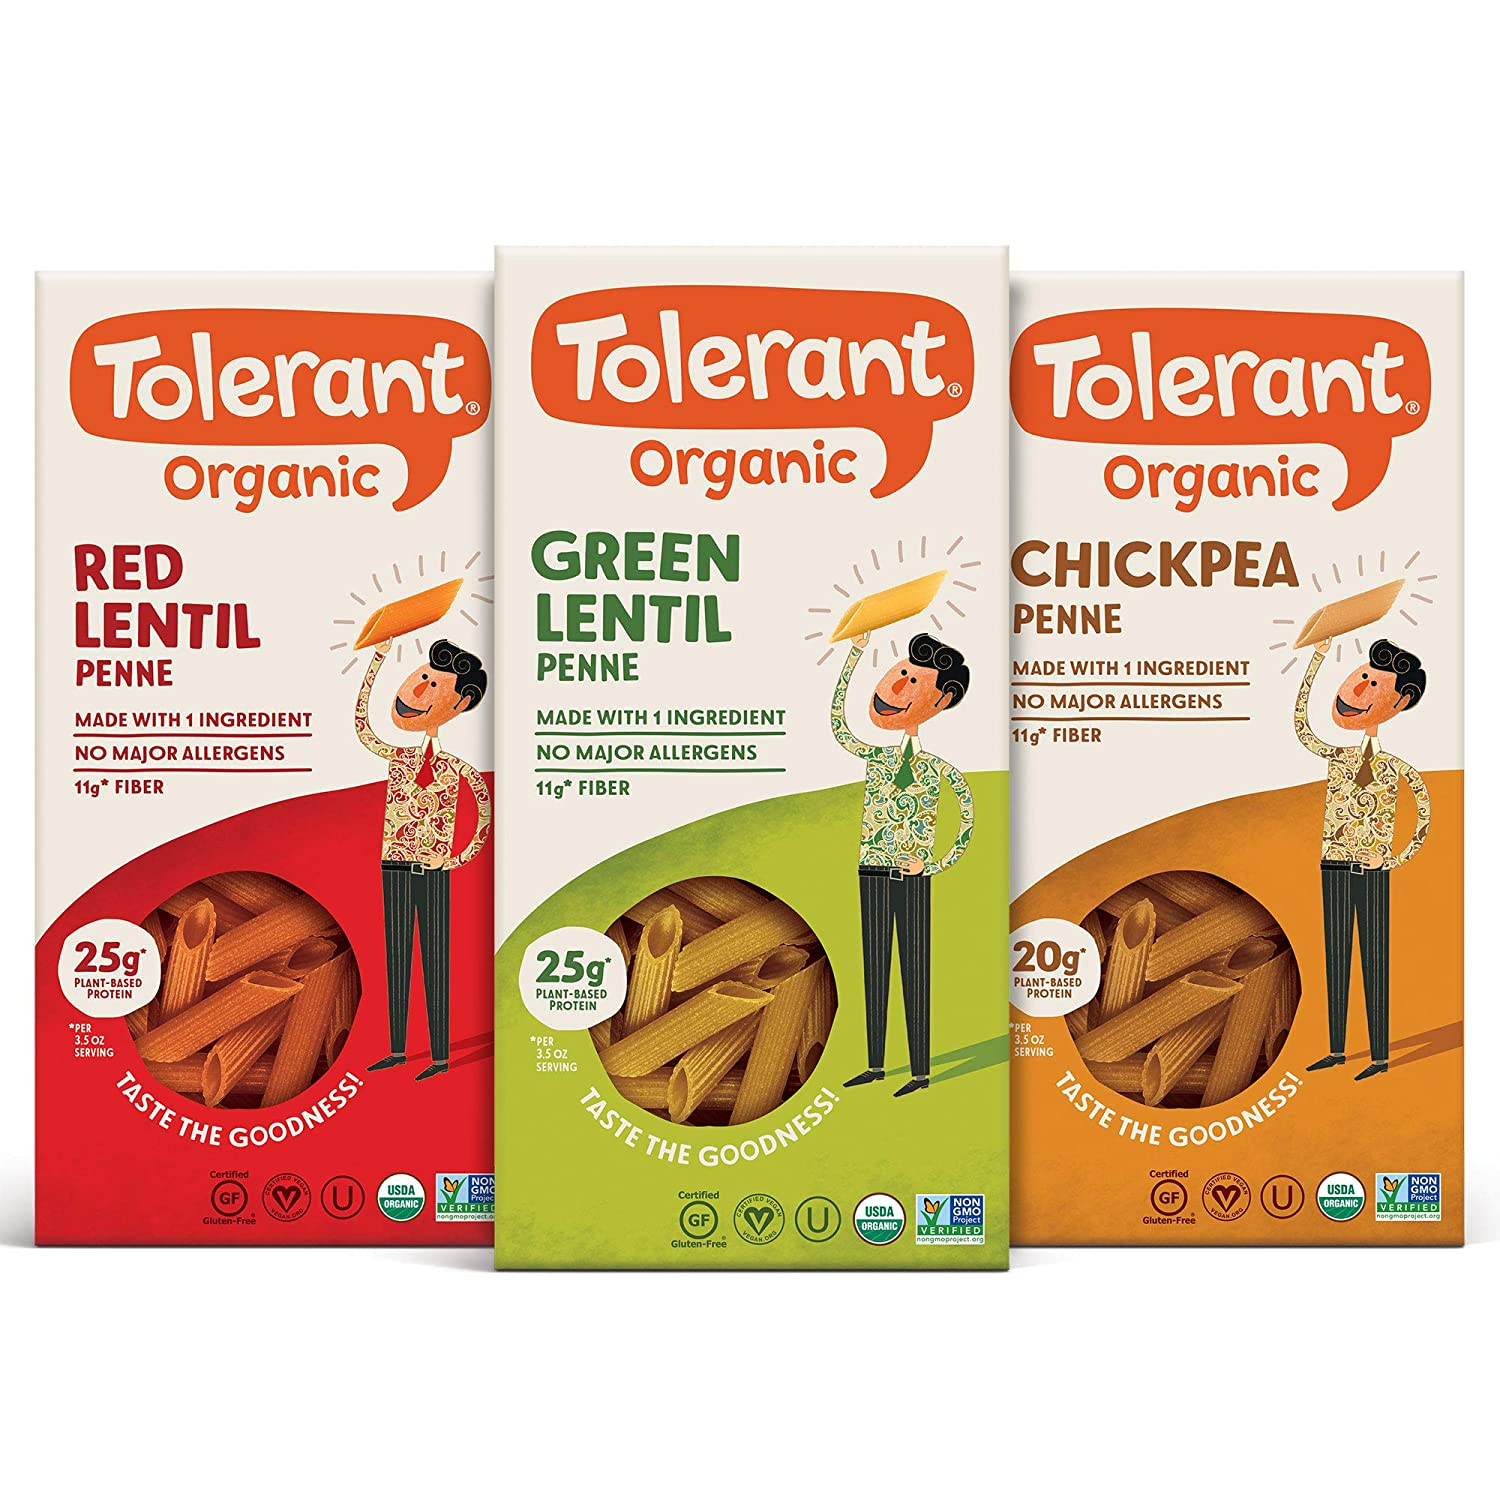 Tolerant Organic Gluten Free Penne Pasta Variety Pack (Green Lentil, Red Lentil, Chickpea), 8oz - Case of 3, Plant Based Protein, Vegan Pasta, Single Ingredient Protein Pasta, Whole Food, Clean Pasta